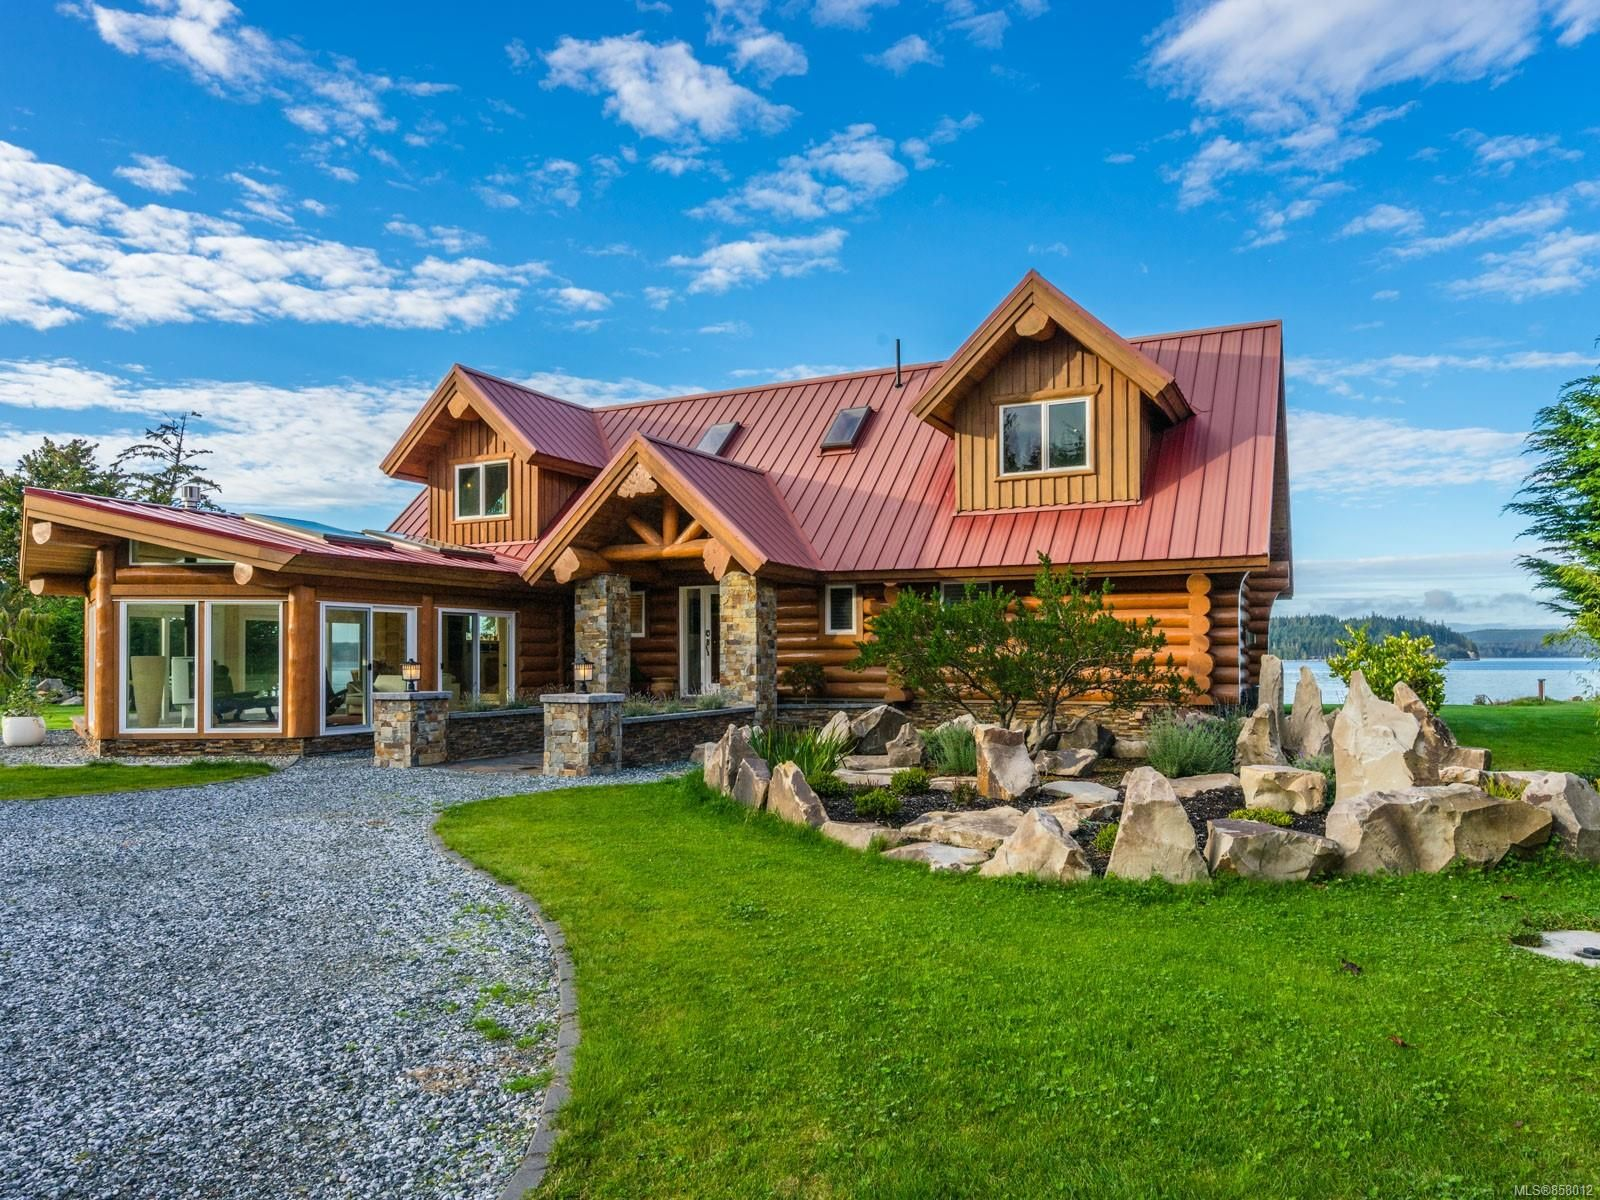 Photo 85: Photos: 6030 MINE Rd in : NI Port McNeill House for sale (North Island)  : MLS®# 858012